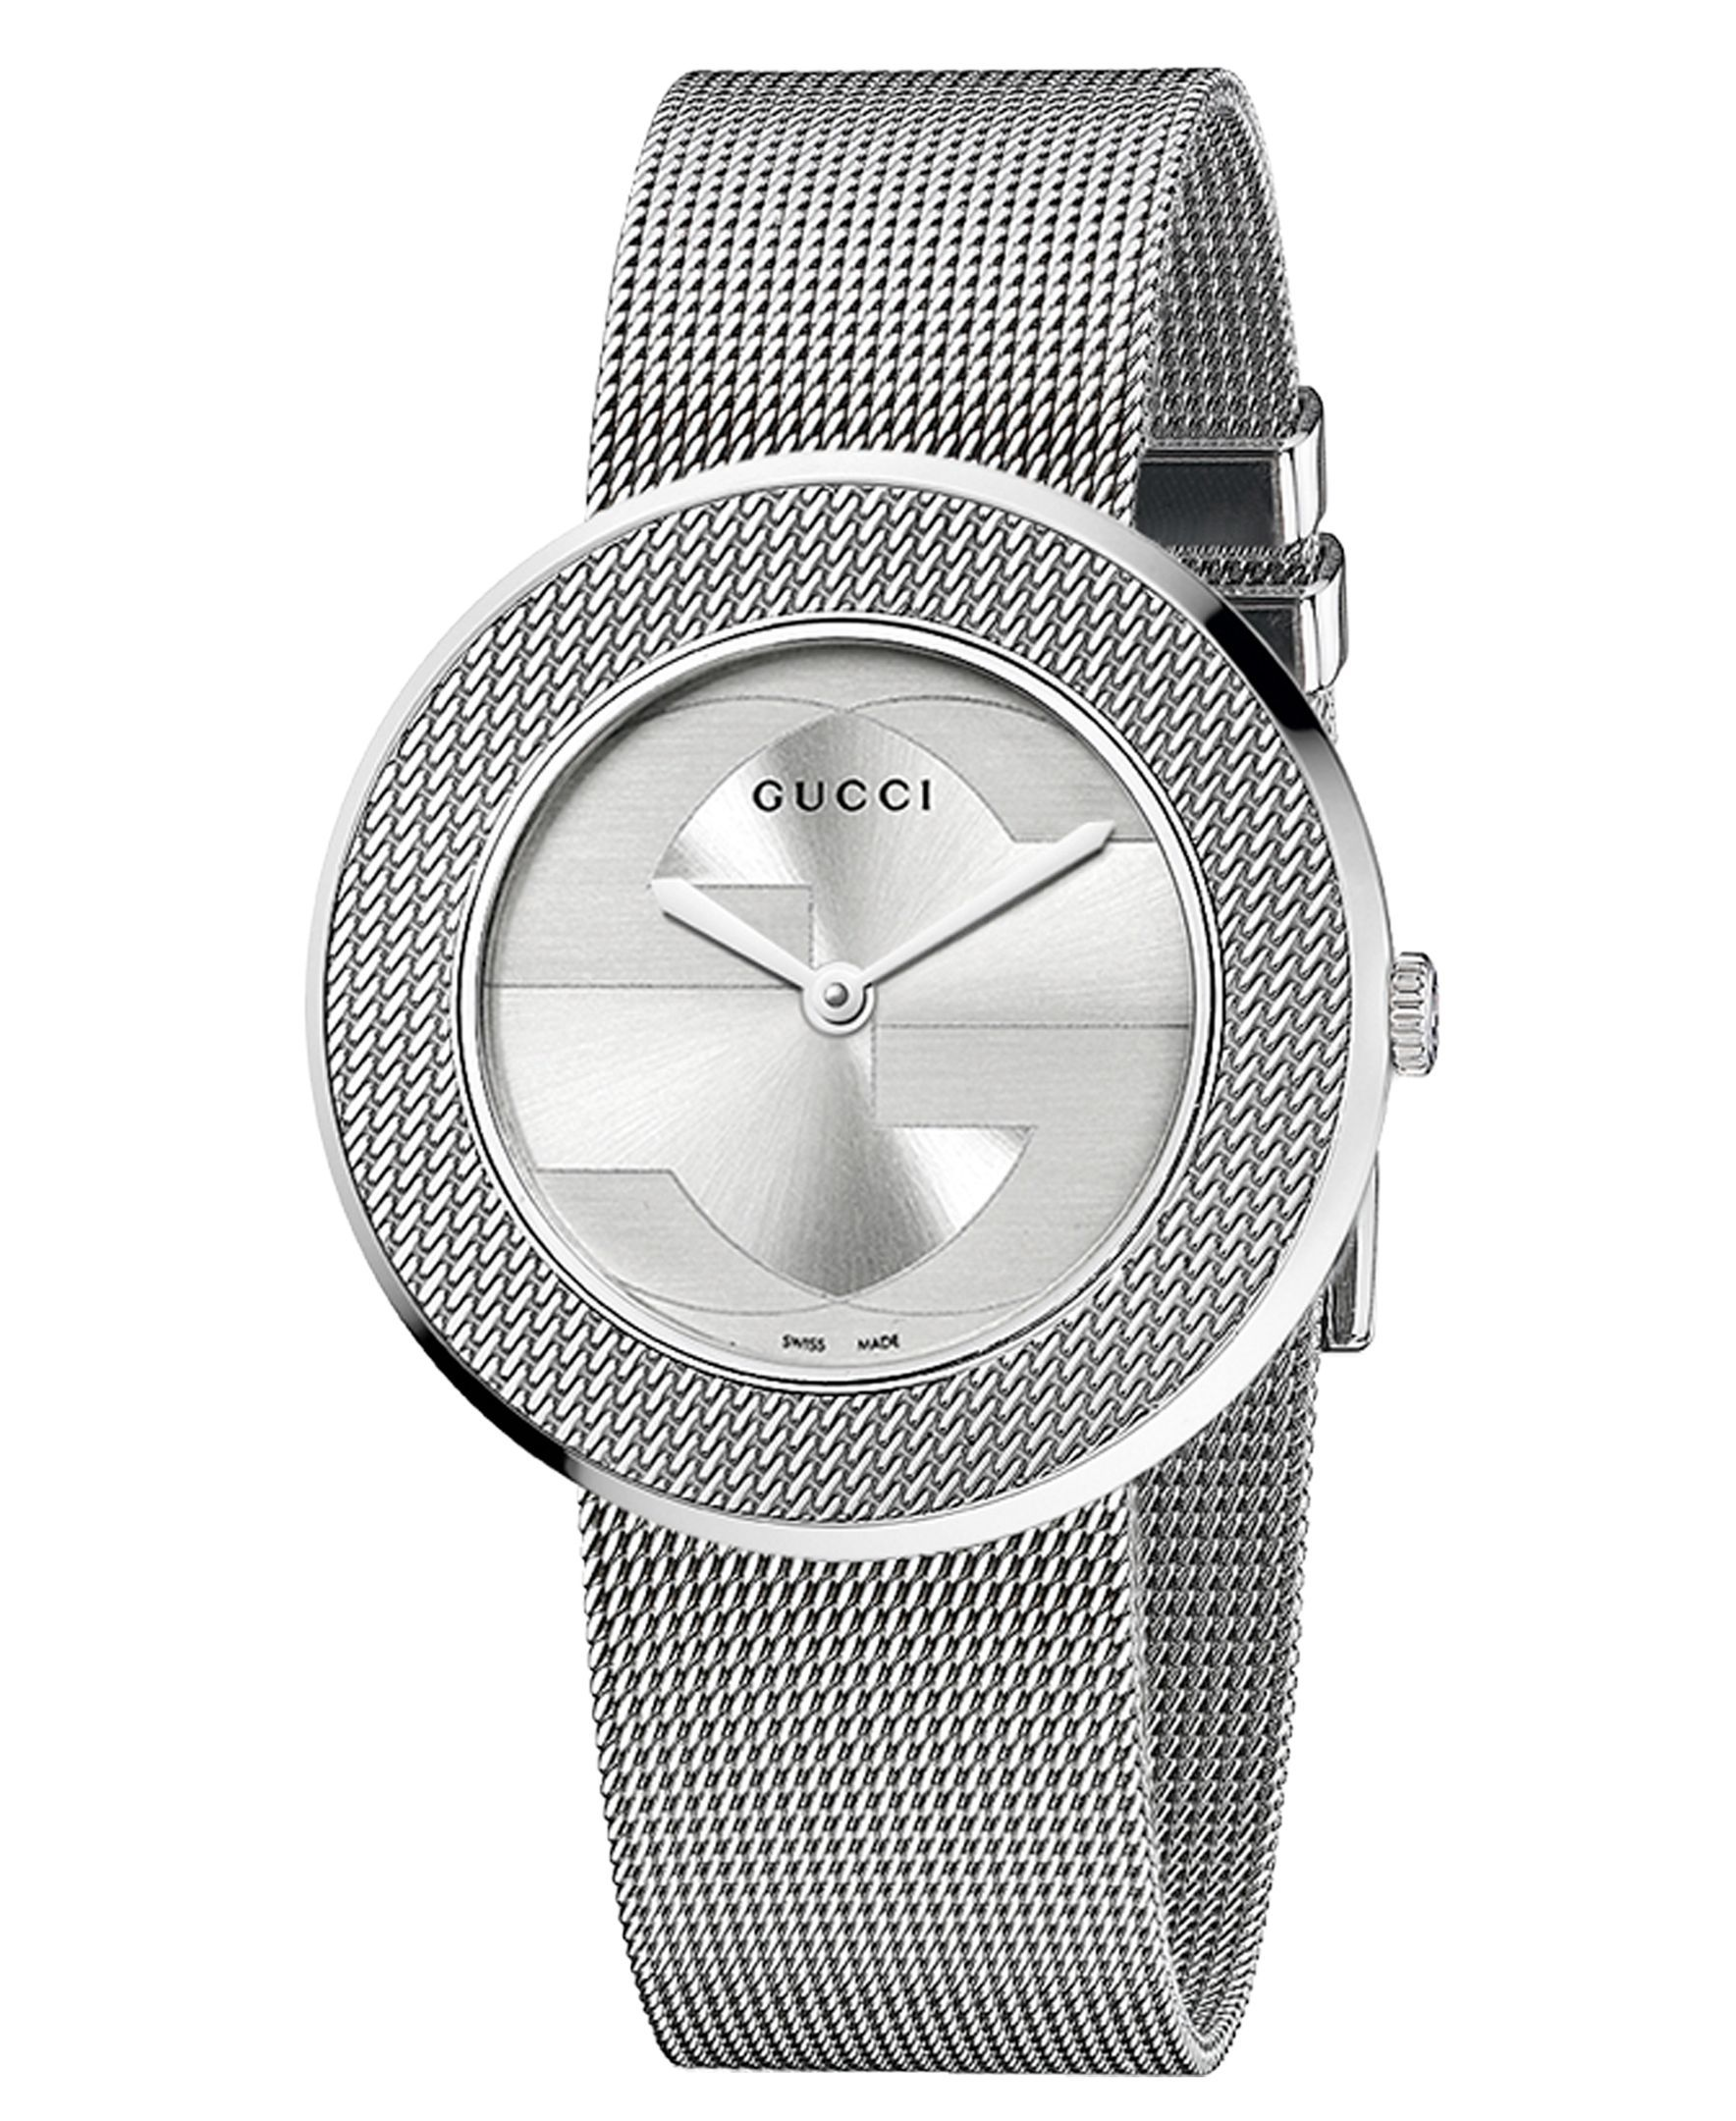 2a4bc8686d1 Gucci Watch